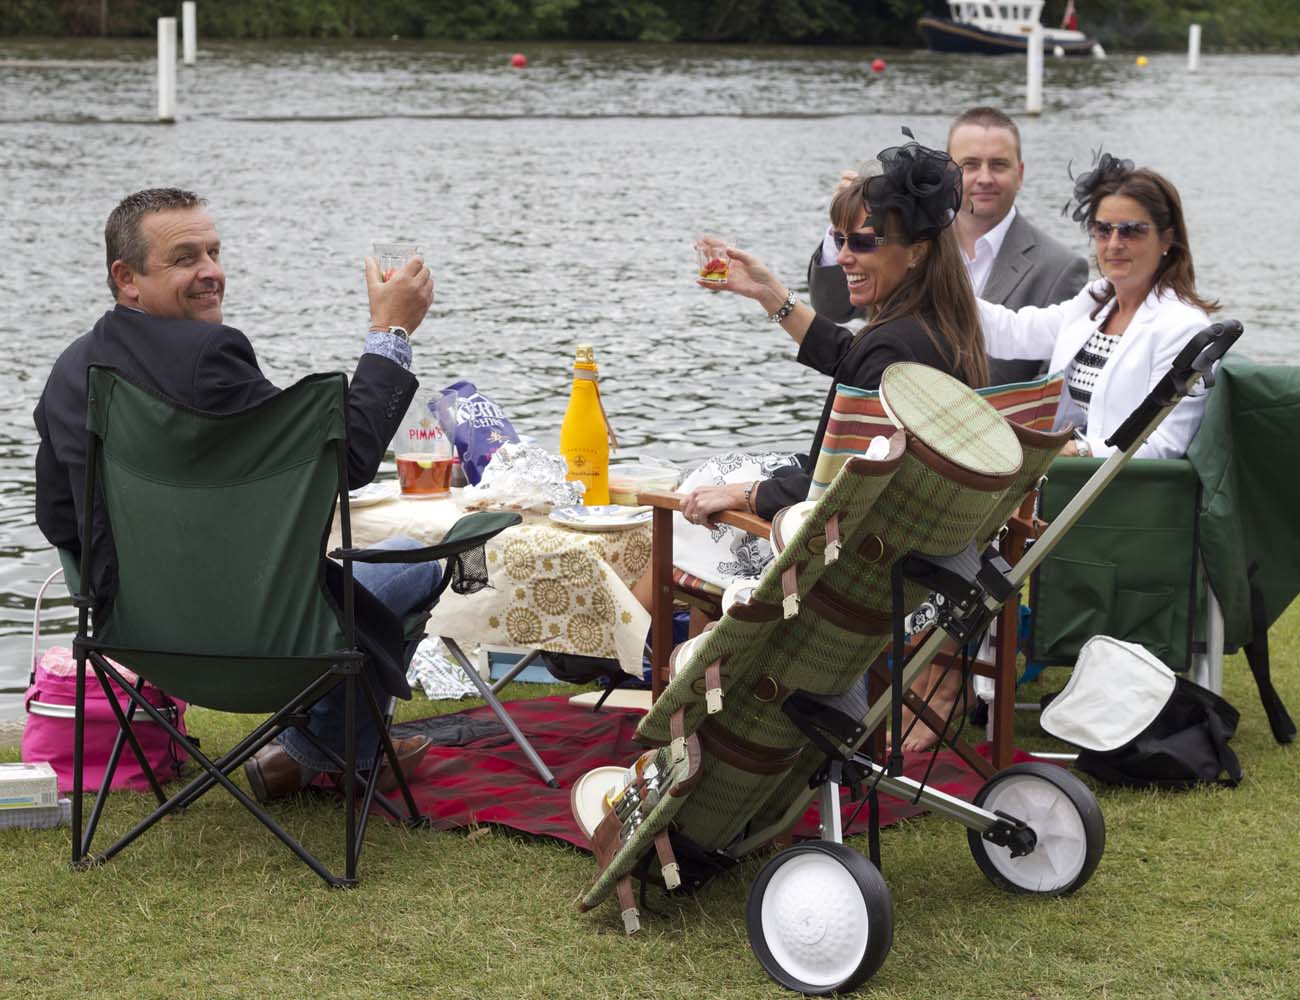 Picnic Trolley – Gourmet Trolley for 4 People